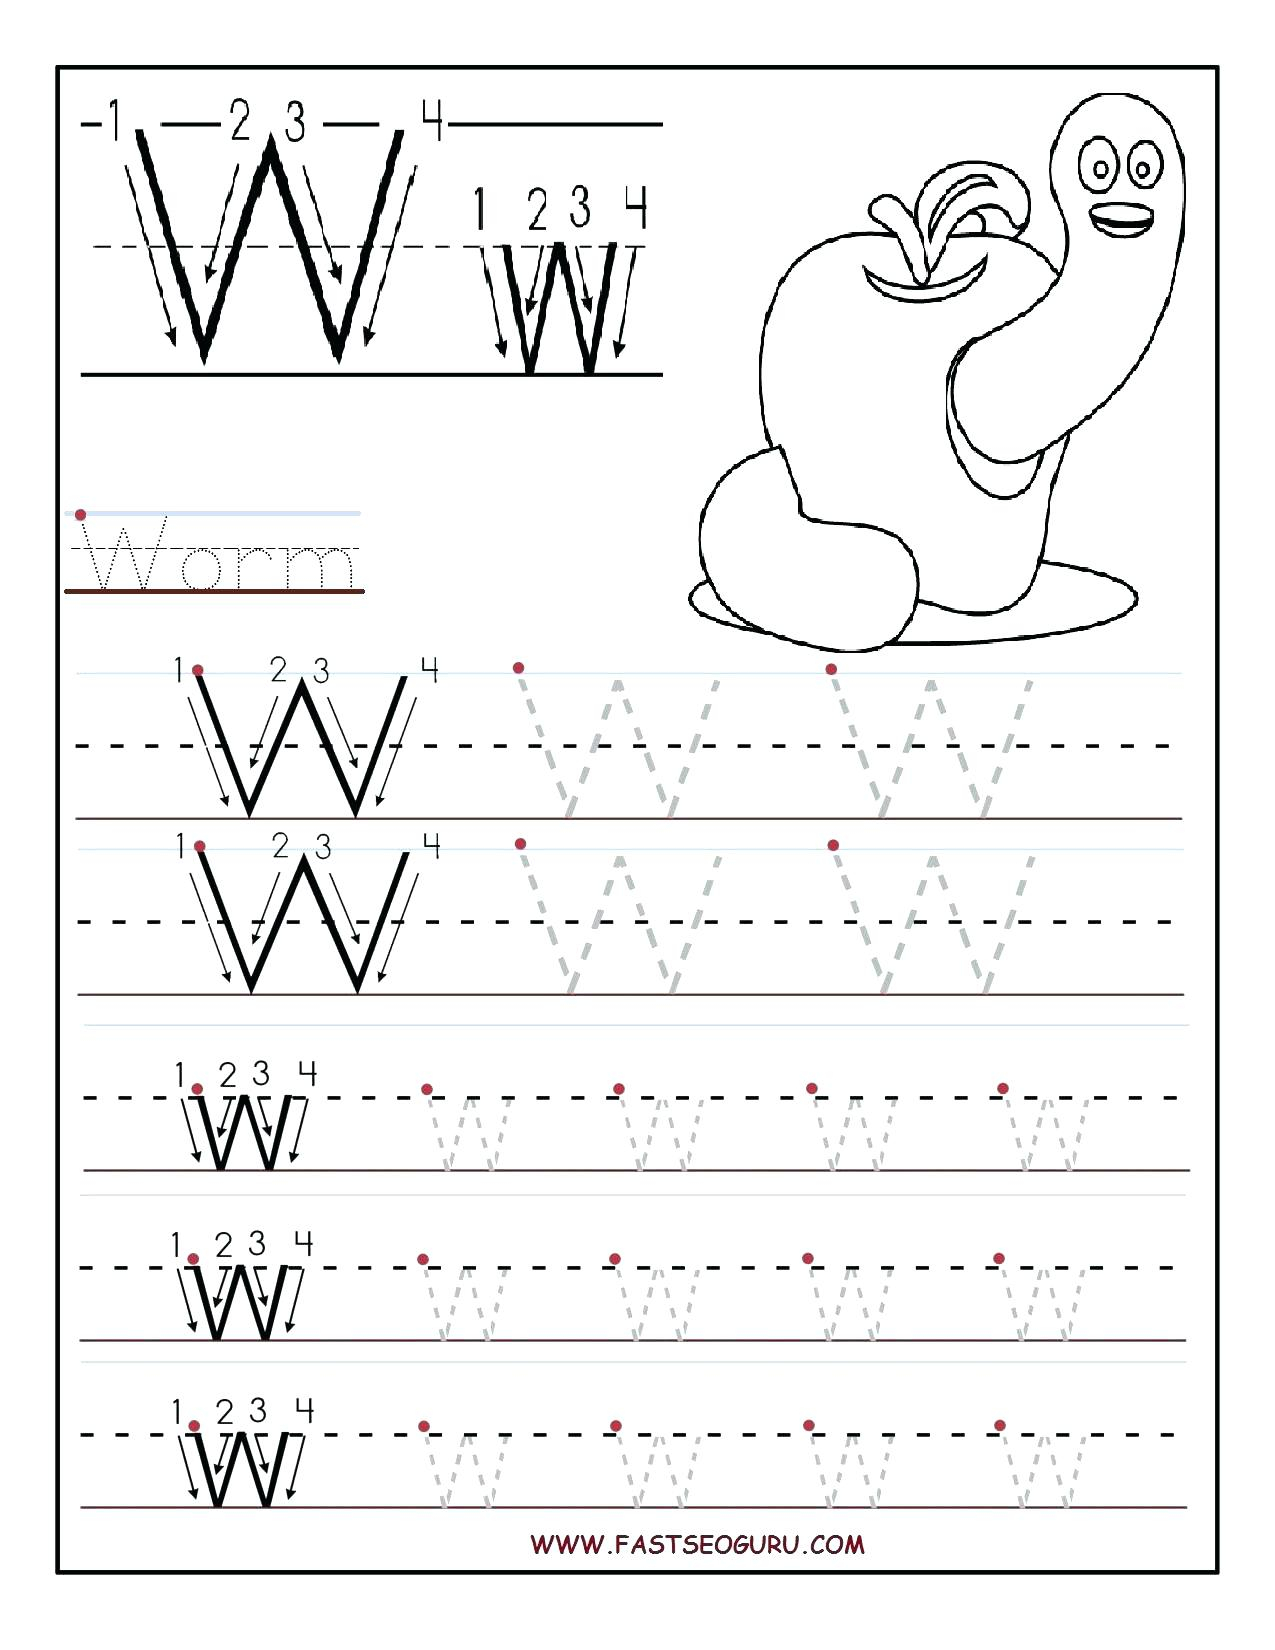 Alphabet Worksheets For 2 Year Olds – Callumnicholls.club